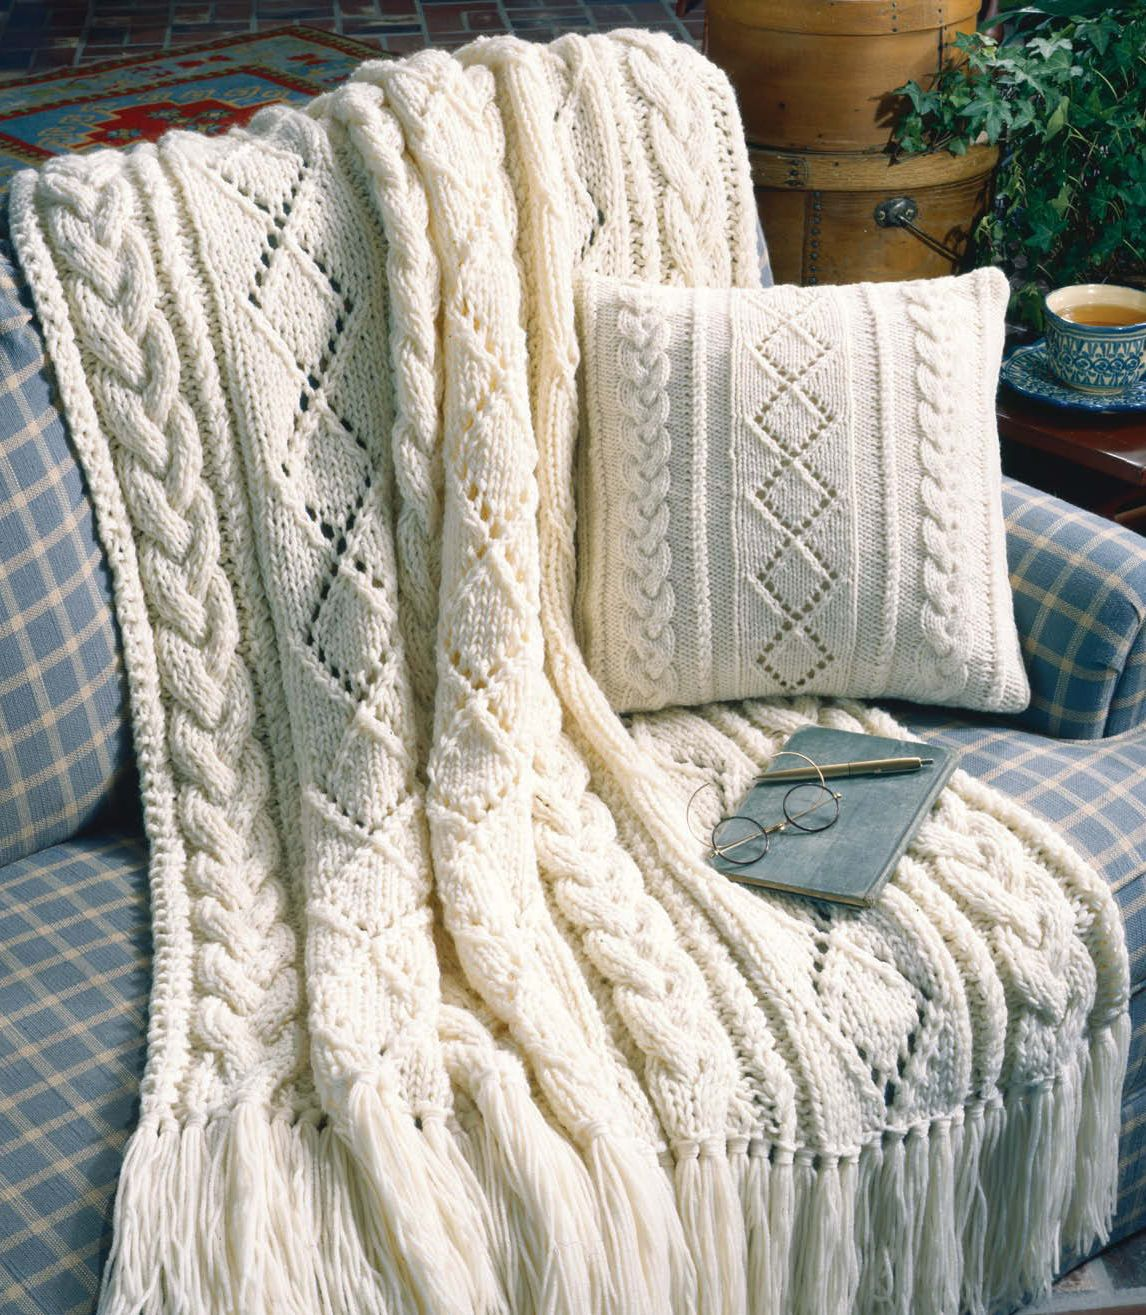 Limited Time Free Knitting Pattern Ad This Cables And Diamonds Afghan And Pillow Set Knitting Patter Kissen Stricken Decke Stricken Muster Zopfmuster Decken